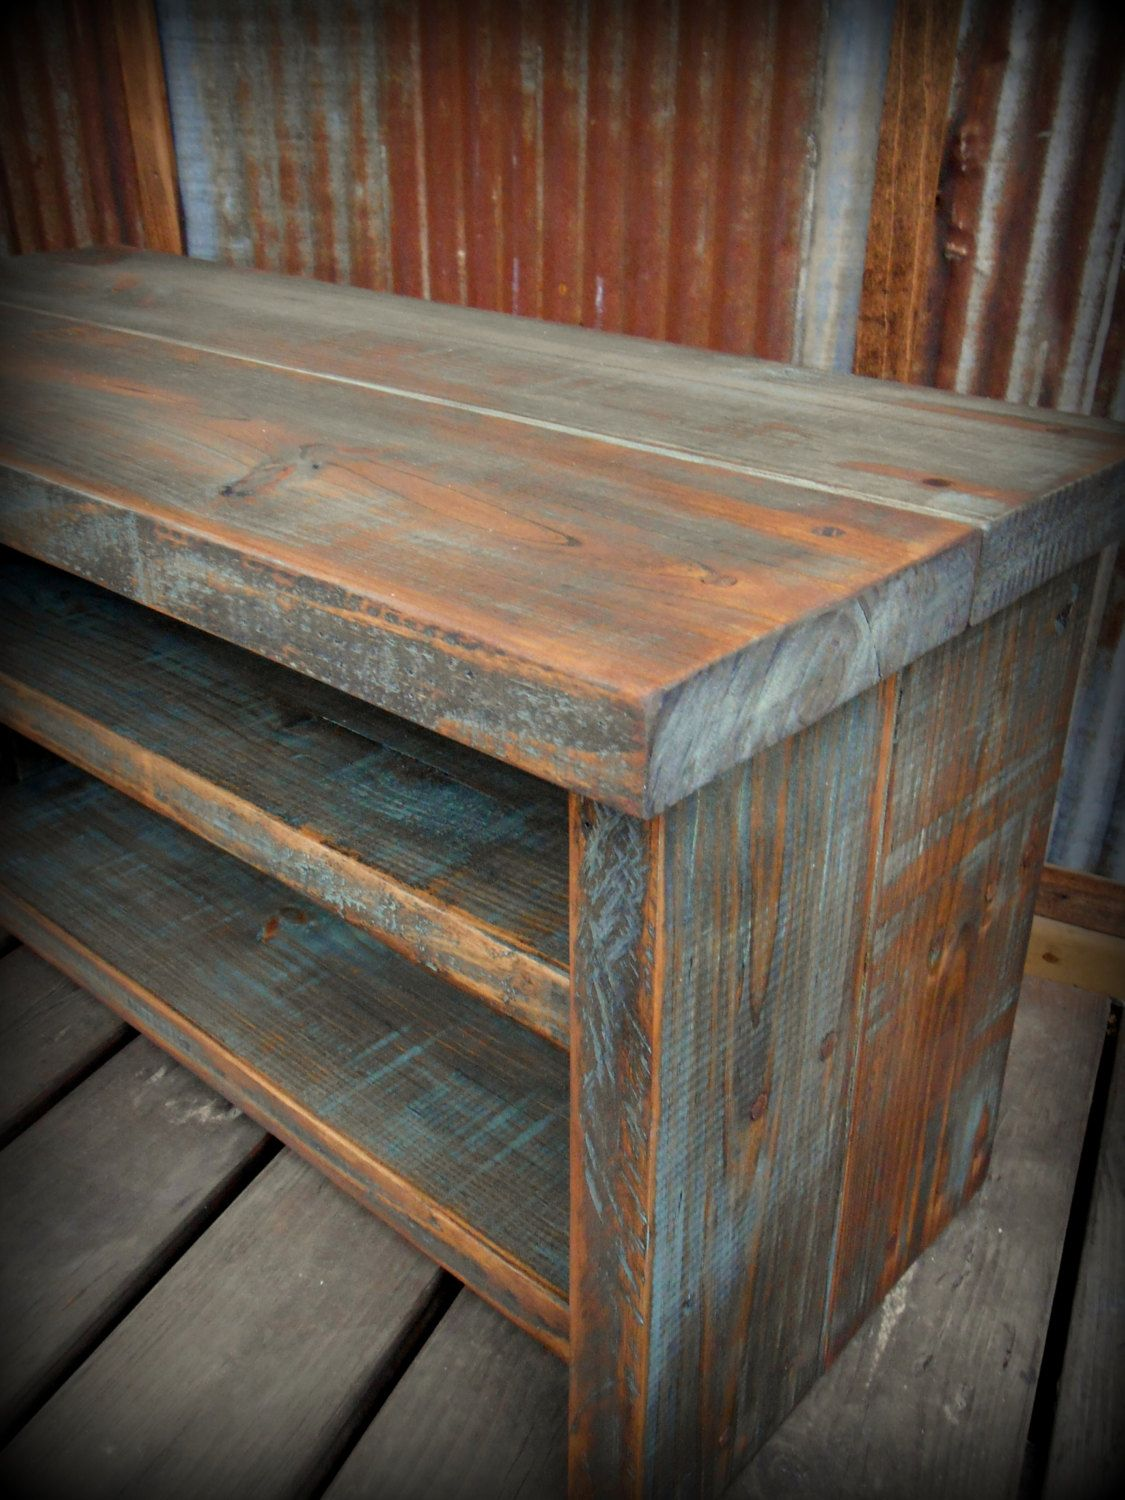 33 Quot Shoe Rack Bench 110 00 Via Etsy Possible To Order Smaller I Think I Could Build That